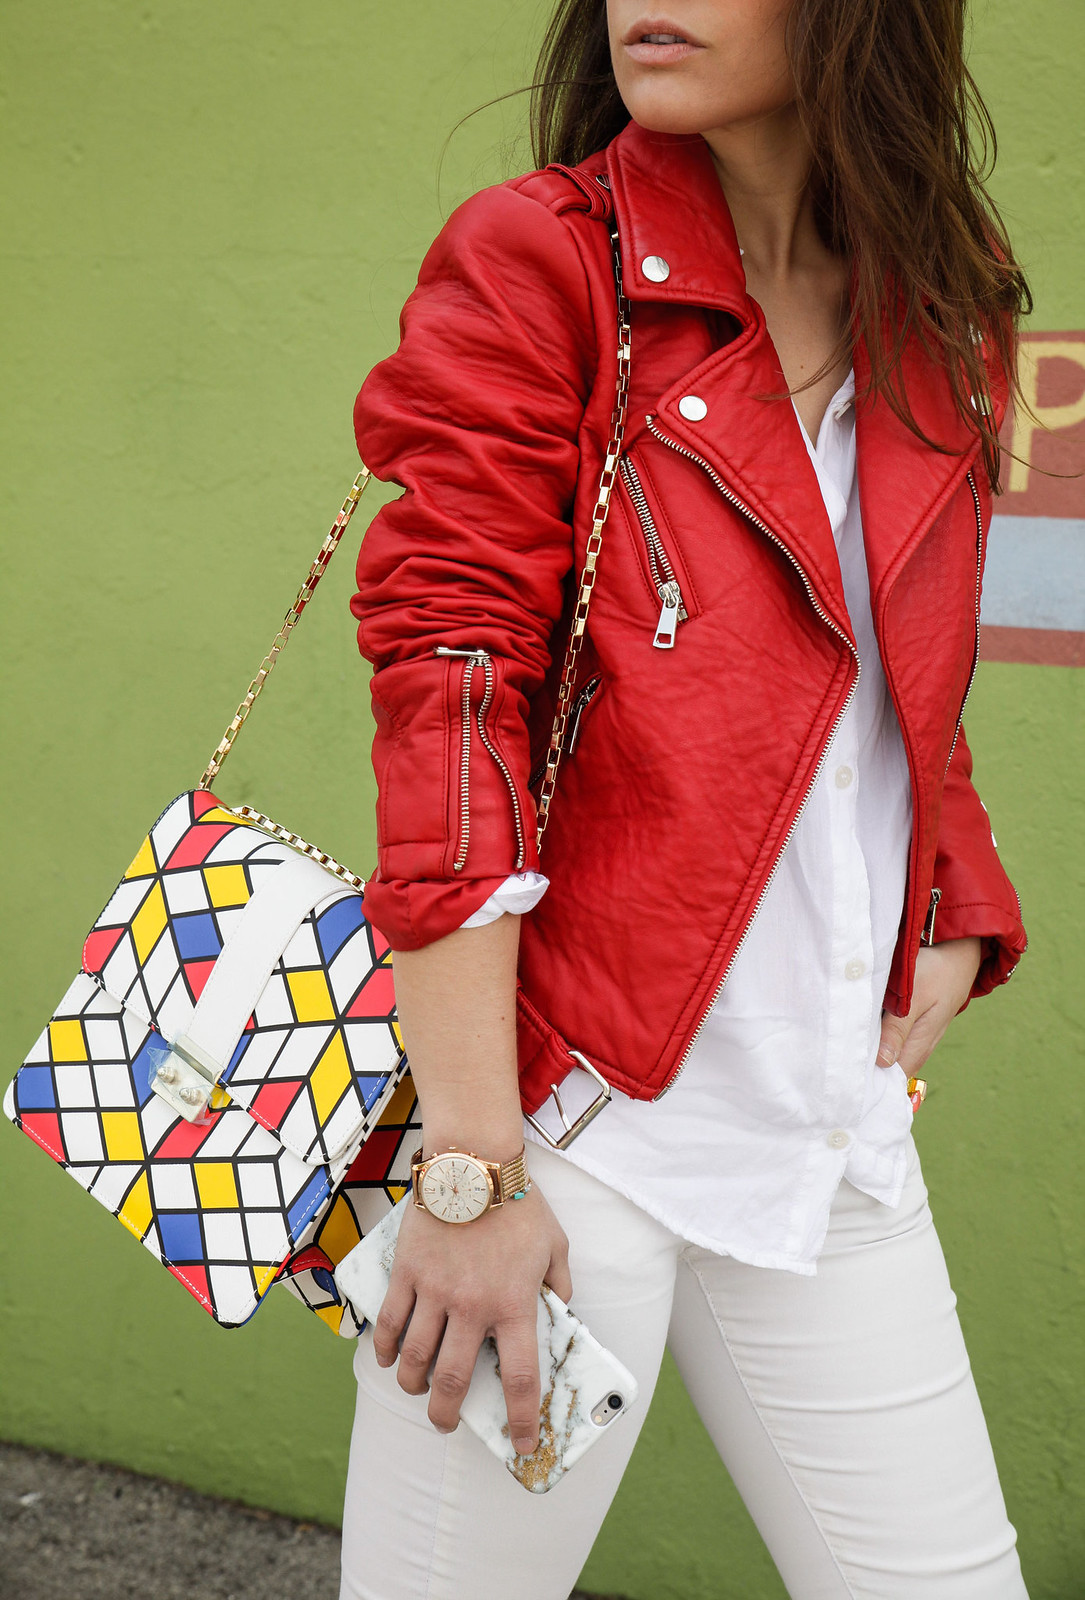 01_Red_Biker_Casual_Look_theguestgirl